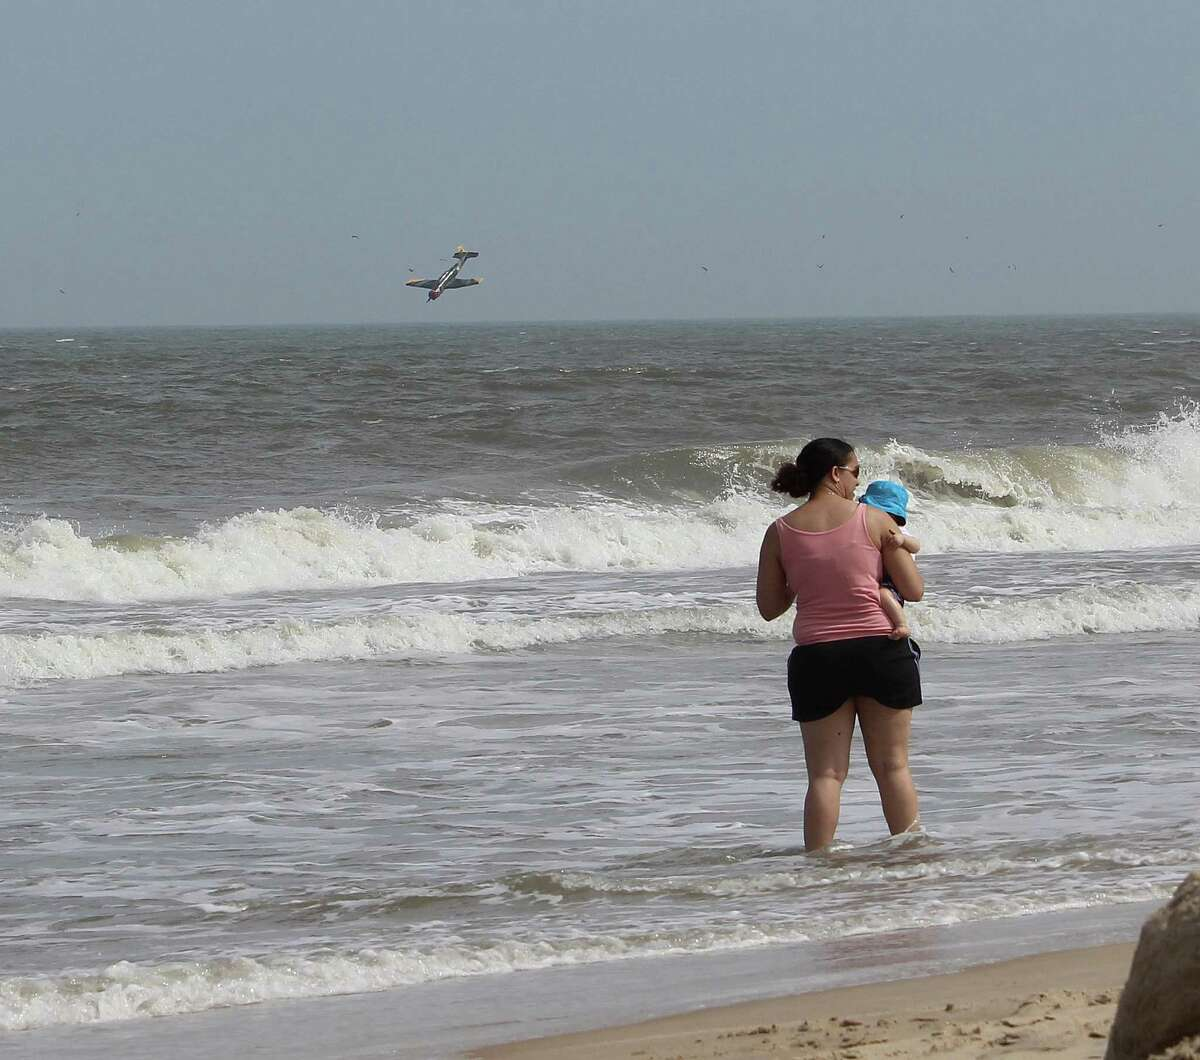 In this Sunday, June 30, 2013 photo released by Lisa Rufo, a woman holds her child as a plane crashes into the Atlantic Ocean with two off-duty police officers off the beach from Ocean City Md. Troopers say the plane took off from the Ocean City Municipal Airport between 3:30 p.m. and 3:45 p.m. Sunday. The destination is not known. Investigators believe Thomas J. Geoghegan Jr., who owned the single-engine Nanchang CJ-6A, was piloting it and 27-year-old Joshua D. Adickes, the lone passenger, was seated behind him.